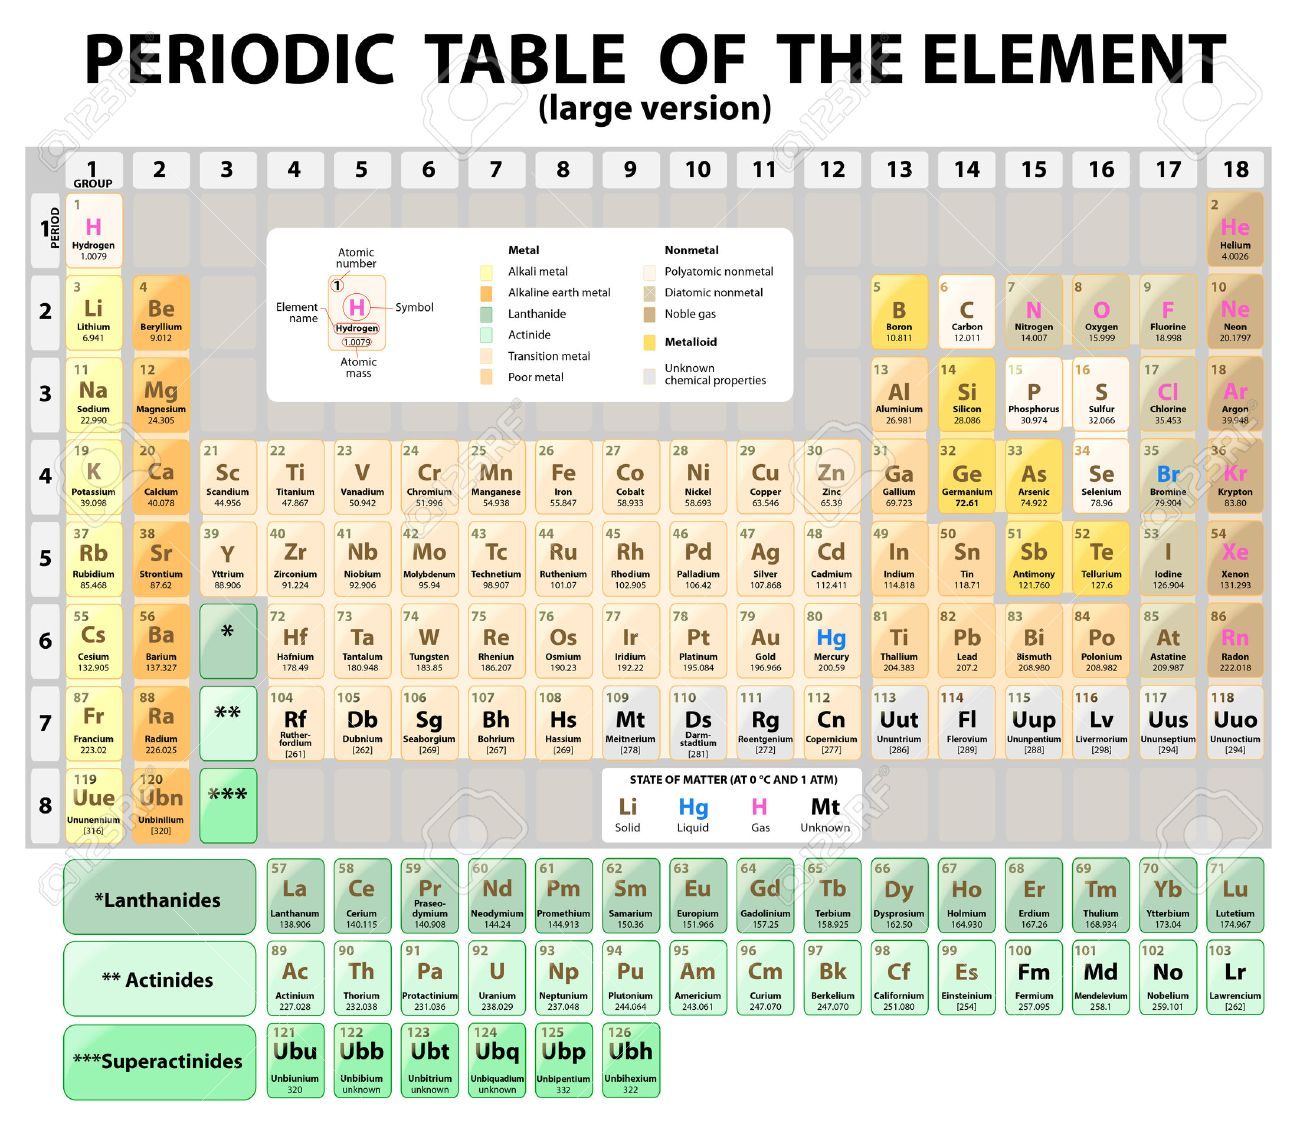 Periodic table of the elements with atomic number symbol and periodic table of the elements with atomic number symbol and weight large version gamestrikefo Choice Image